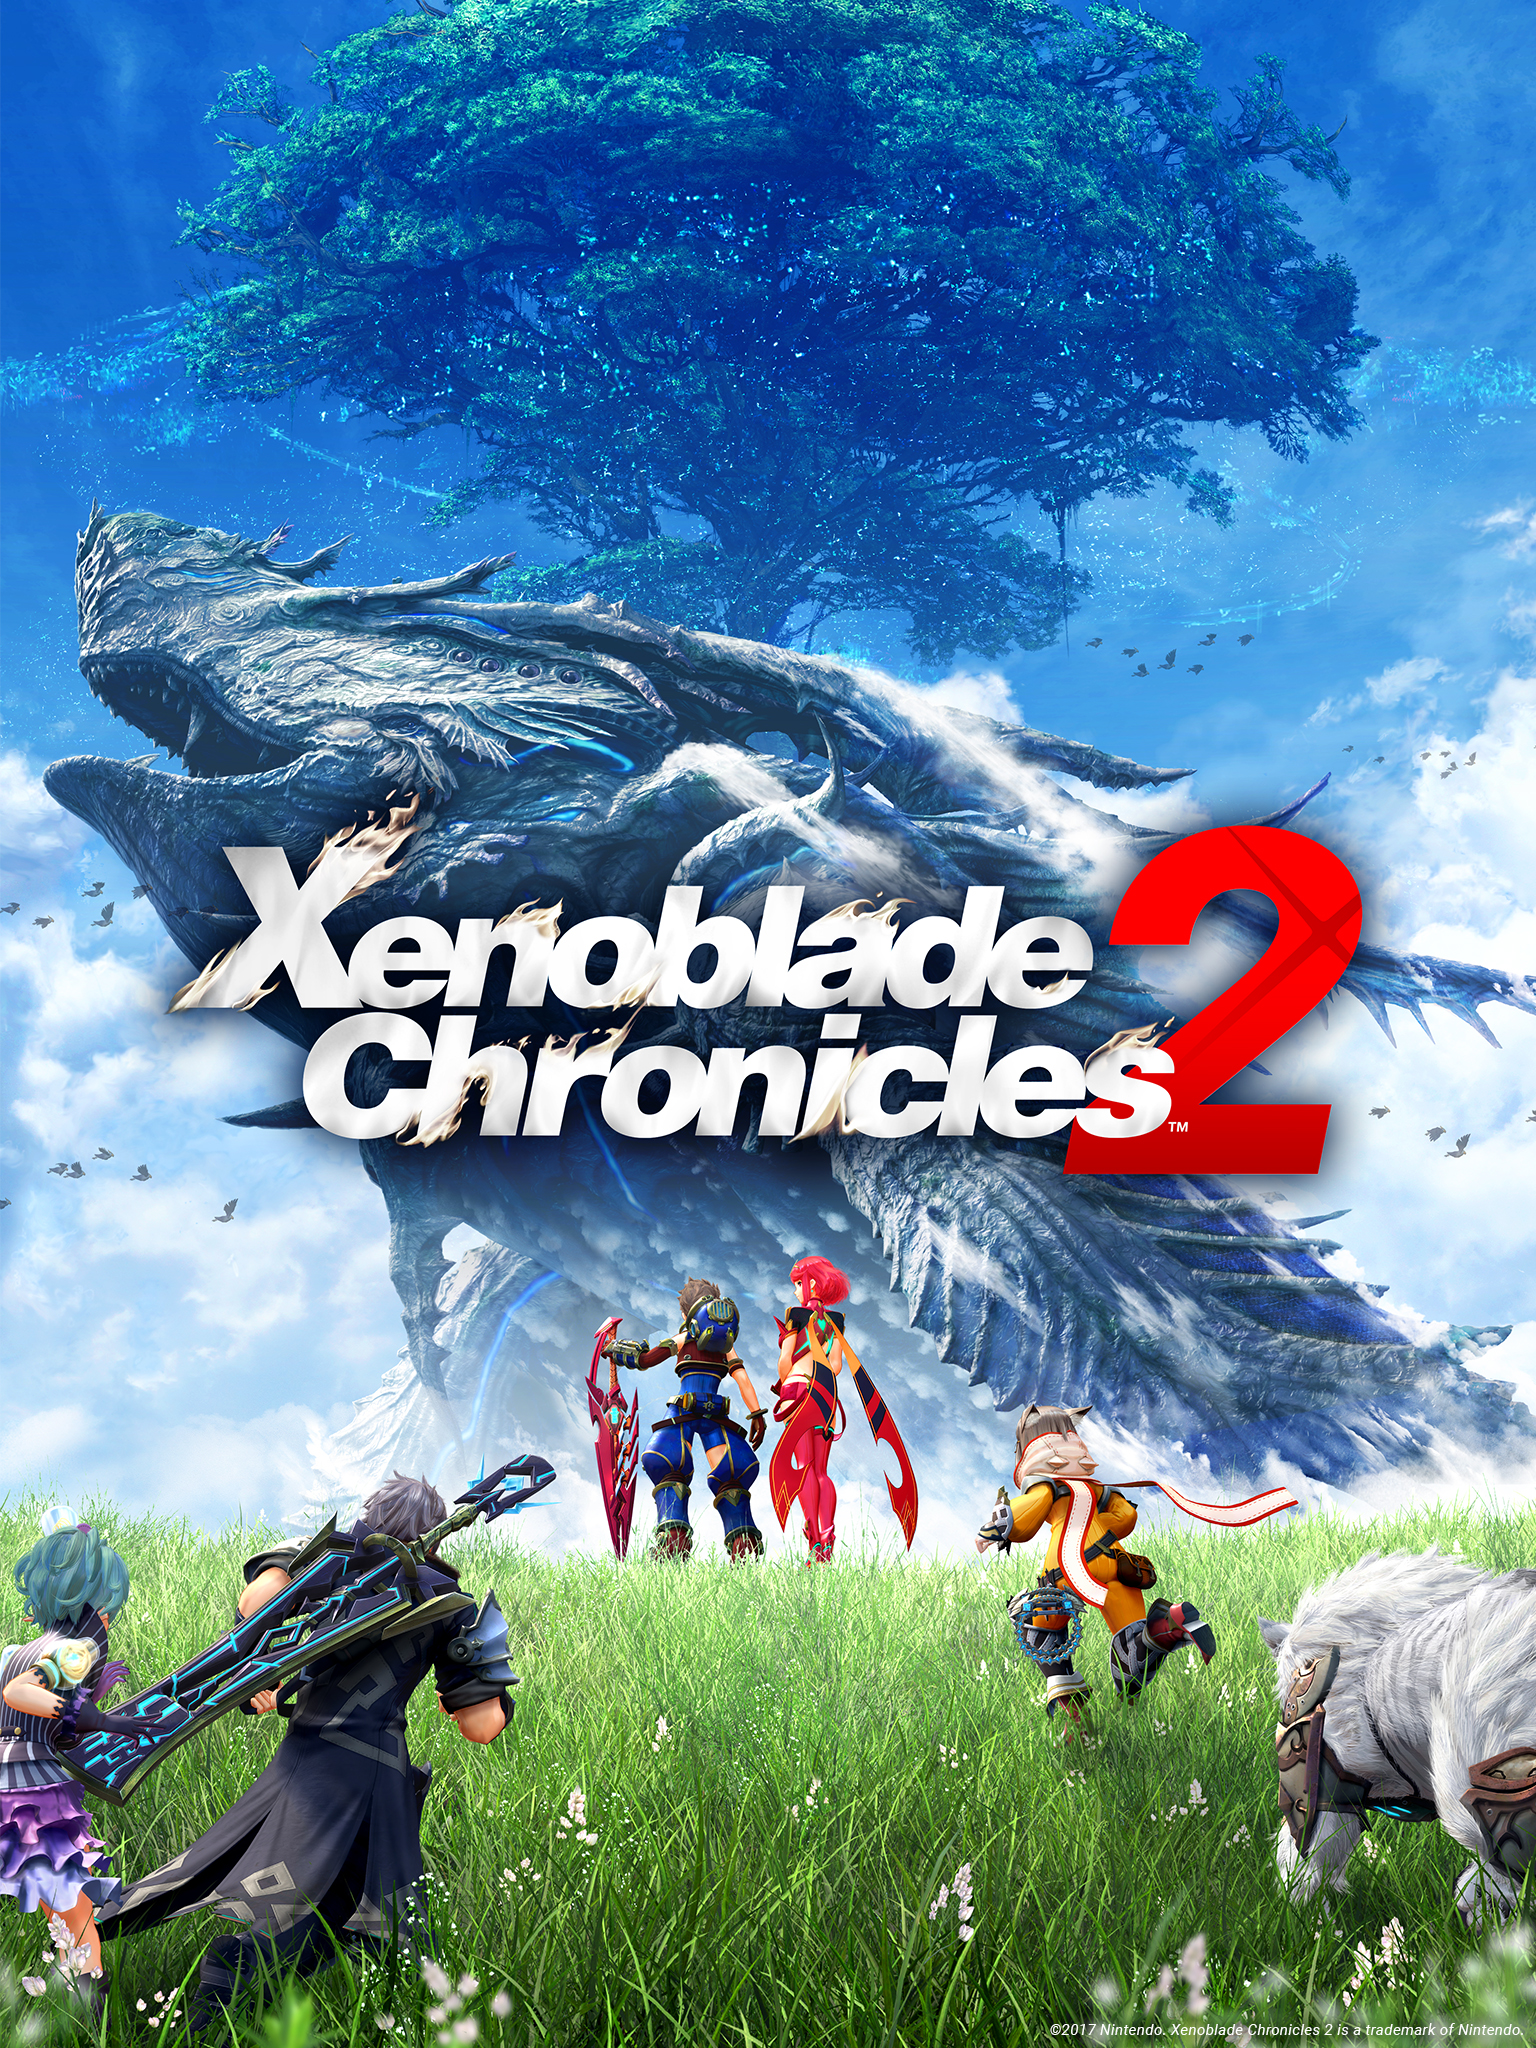 Wallpaper Ending Xenoblade Chronicle 2 2159501 Hd Wallpaper